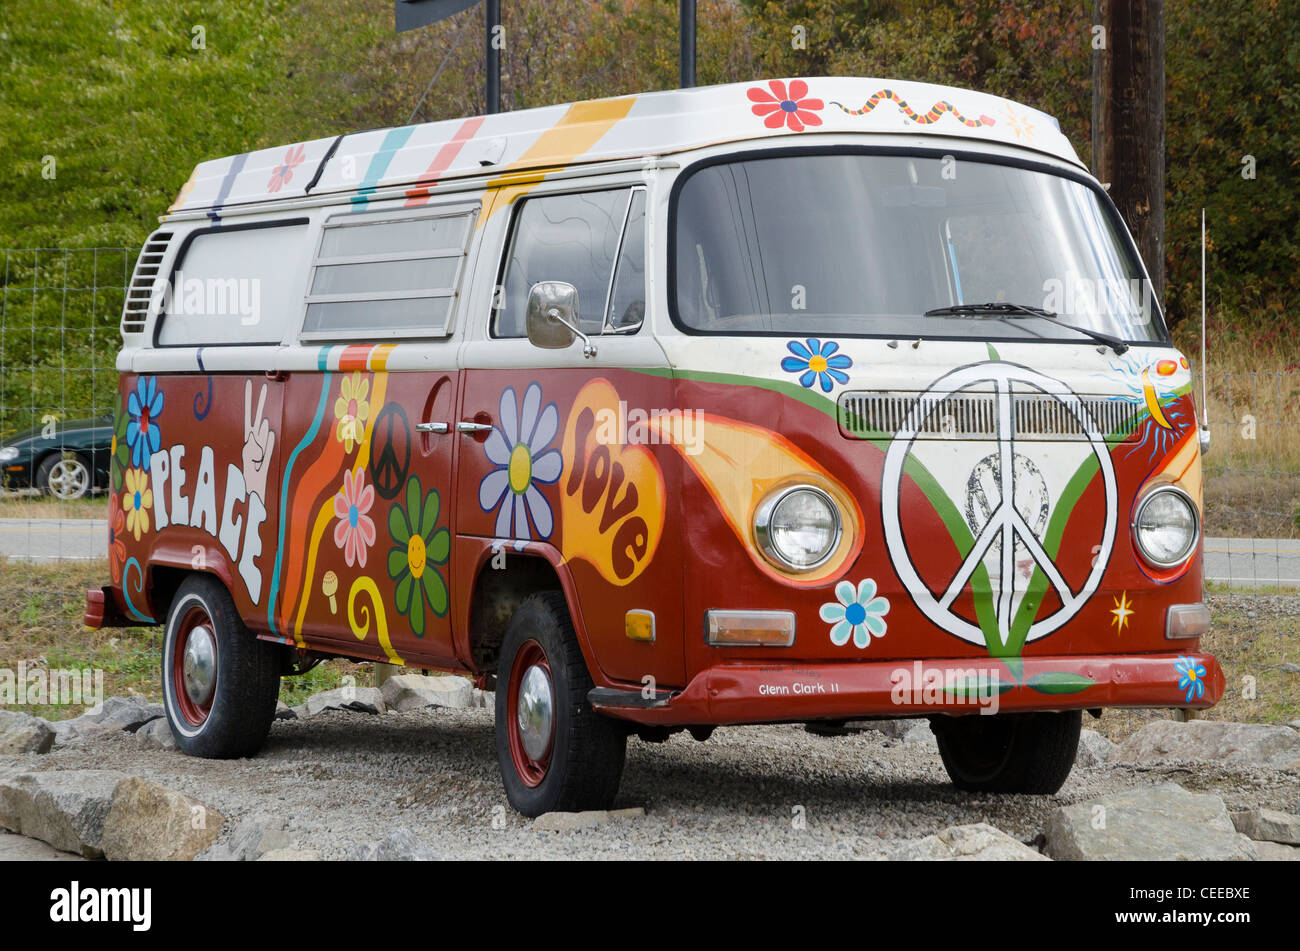 Painted Hippie Van Bus High Resolution Stock Photography And Images Alamy